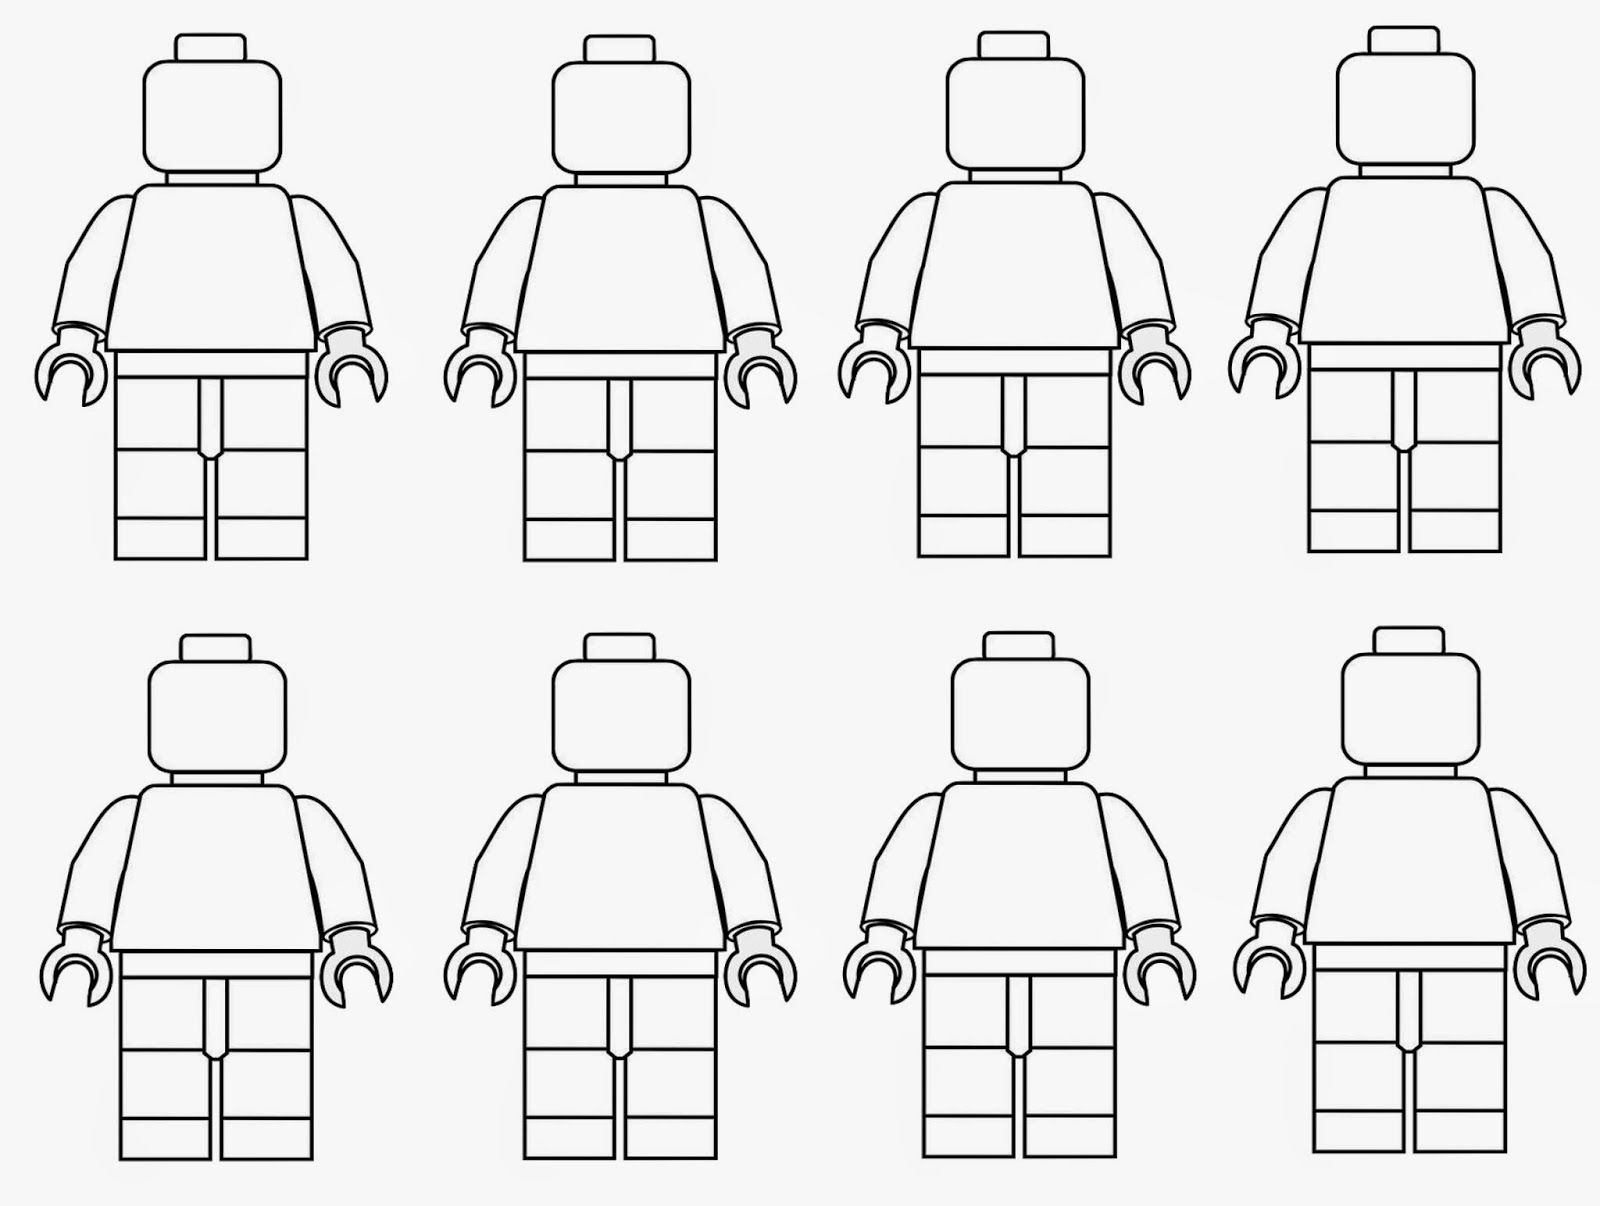 lego people coloring pages lego man drawing at getdrawings free download people coloring lego pages